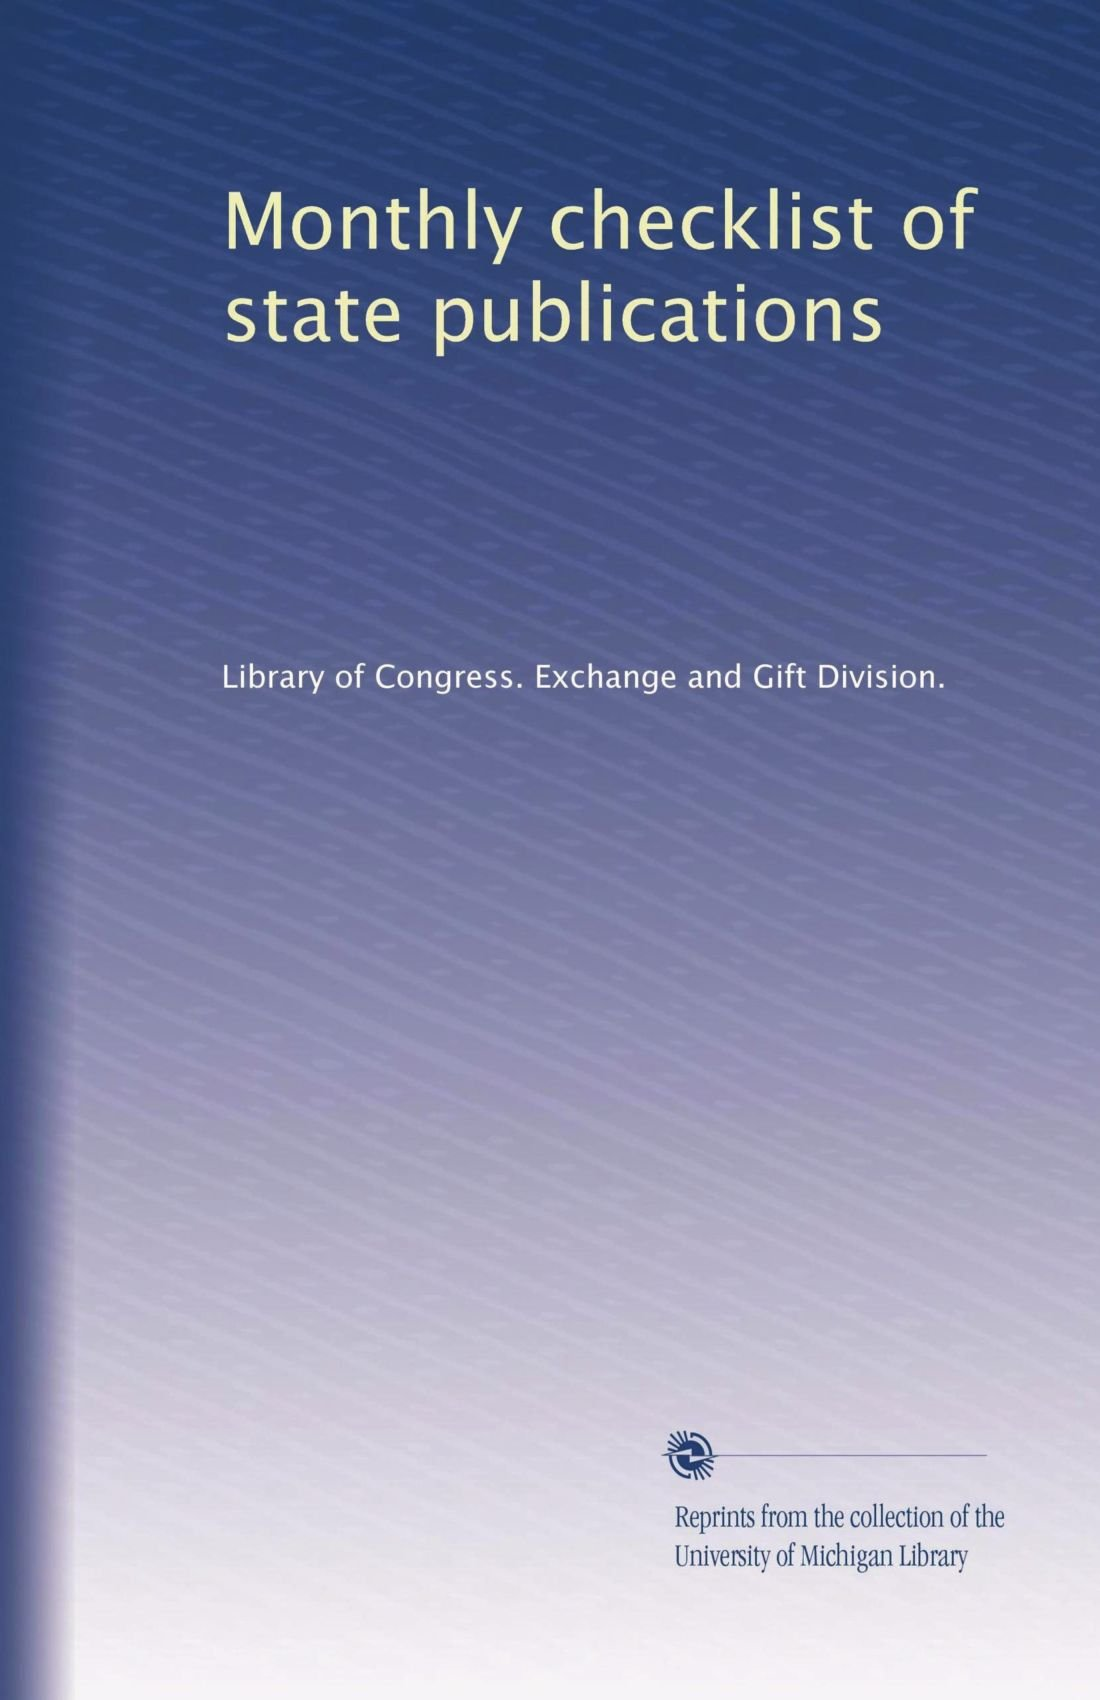 Download Monthly checklist of state publications (Volume 47) ebook